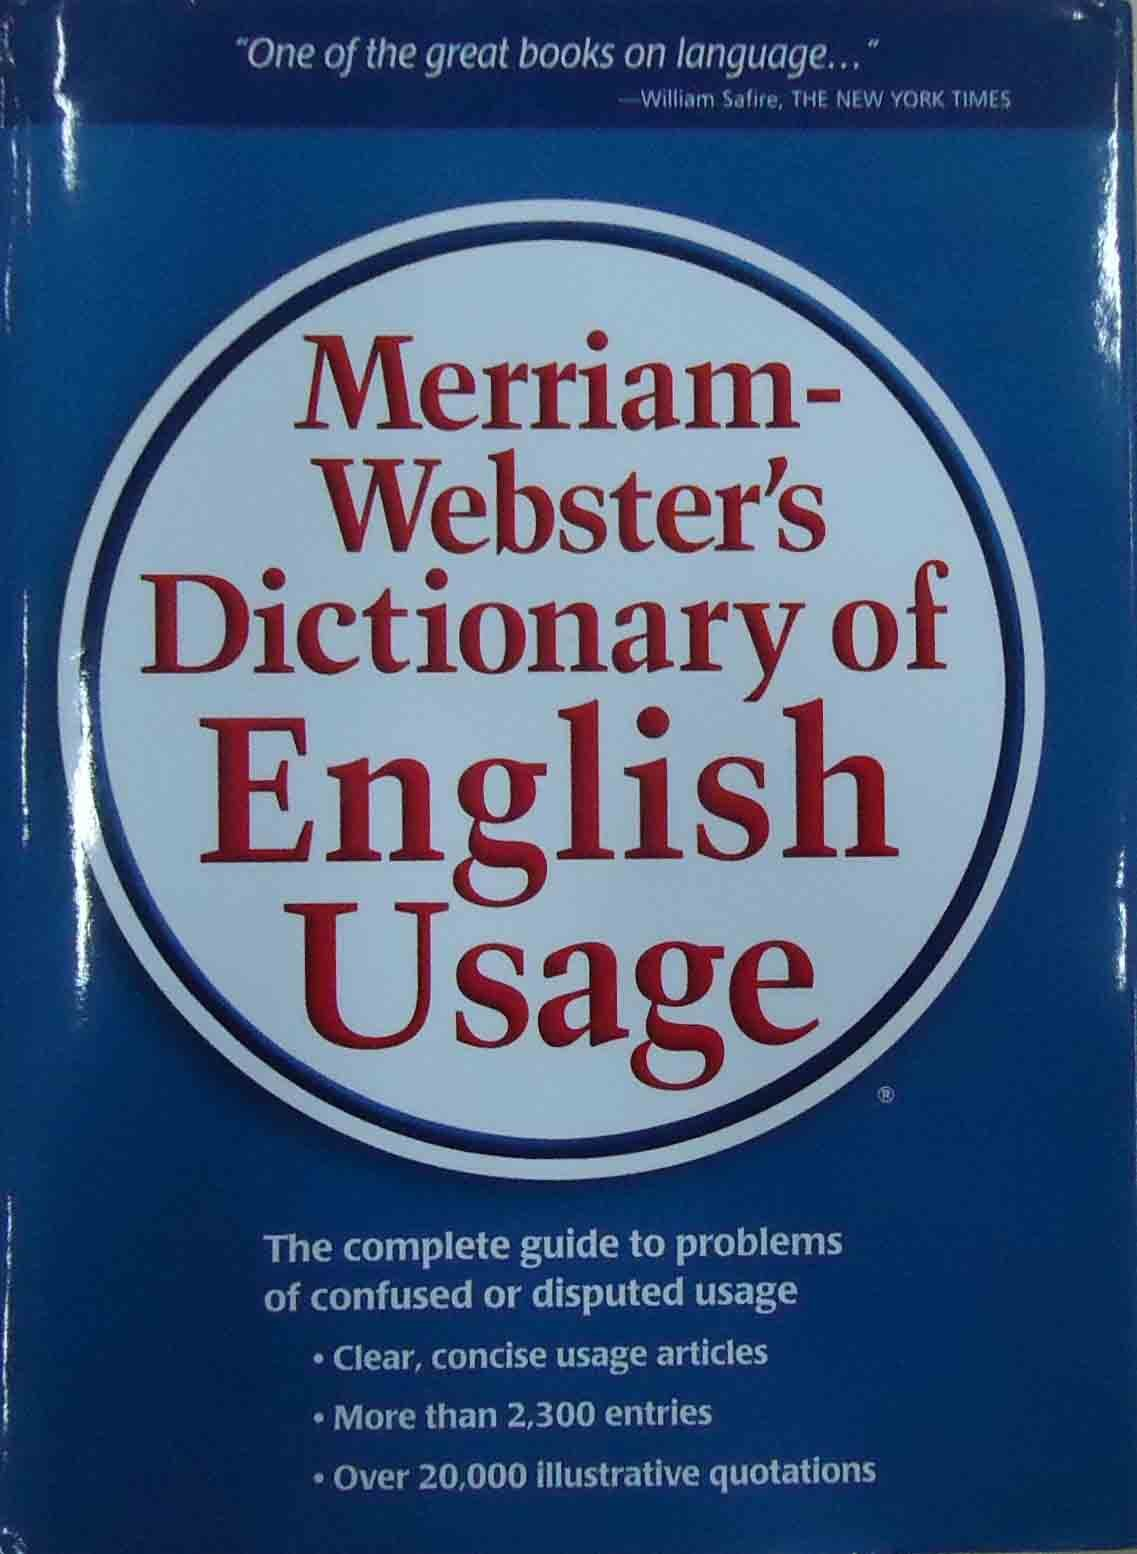 Merriam-Webster's Dictionary of English Usage: Amazon.in: Merriam-Webster:  Books